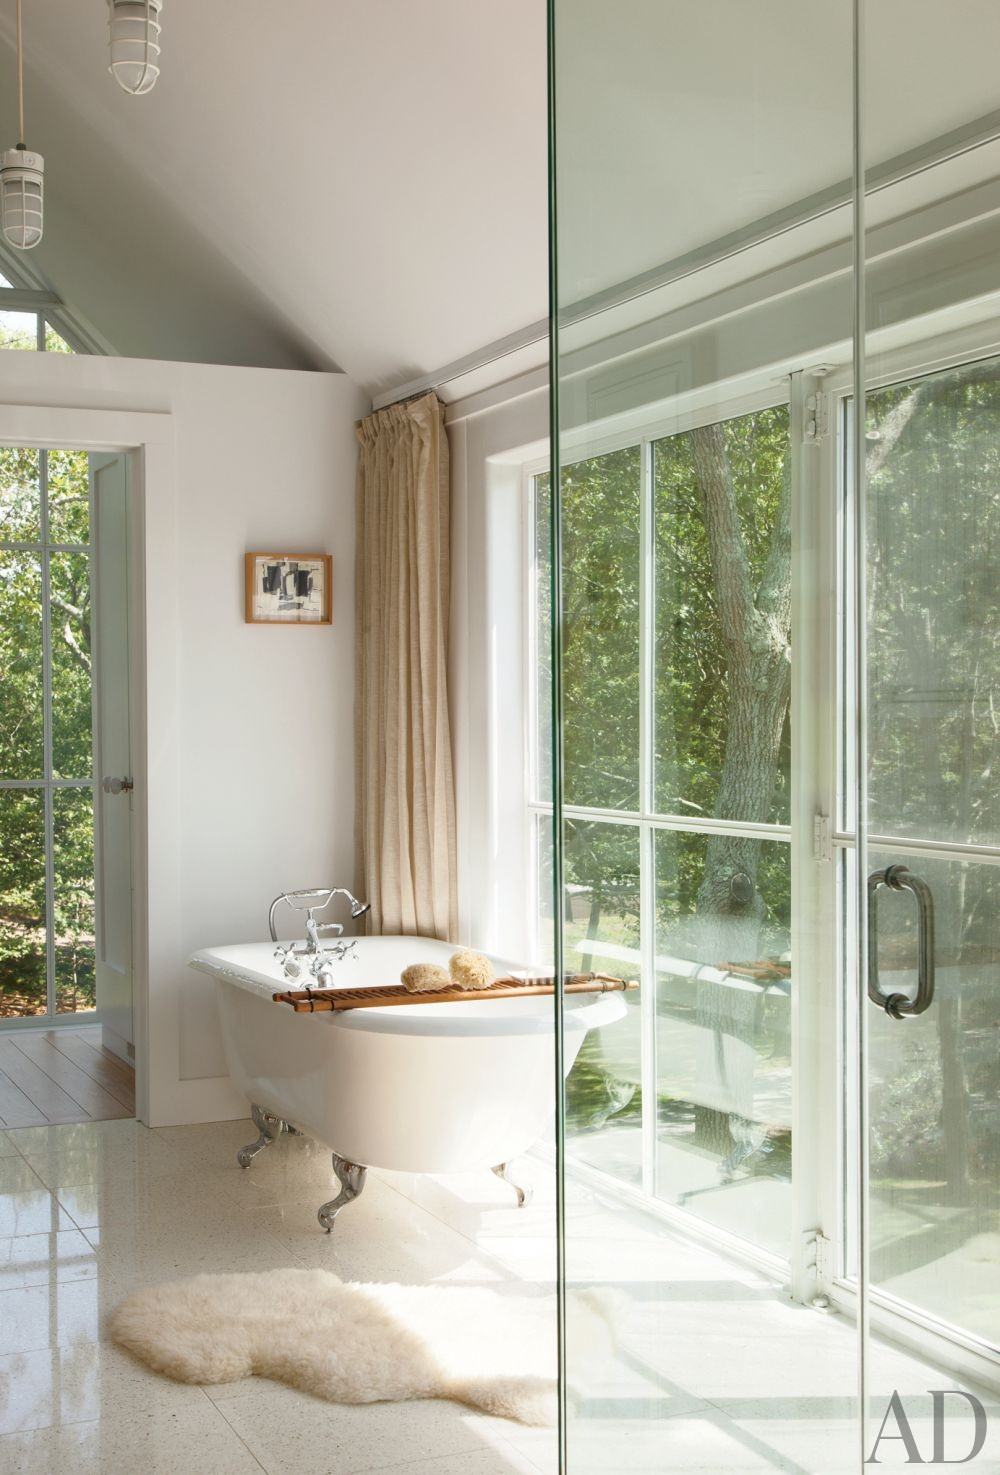 Beach Bathroom by Philip Galanes and Michael Haverland Architect in Shelter Island, New York